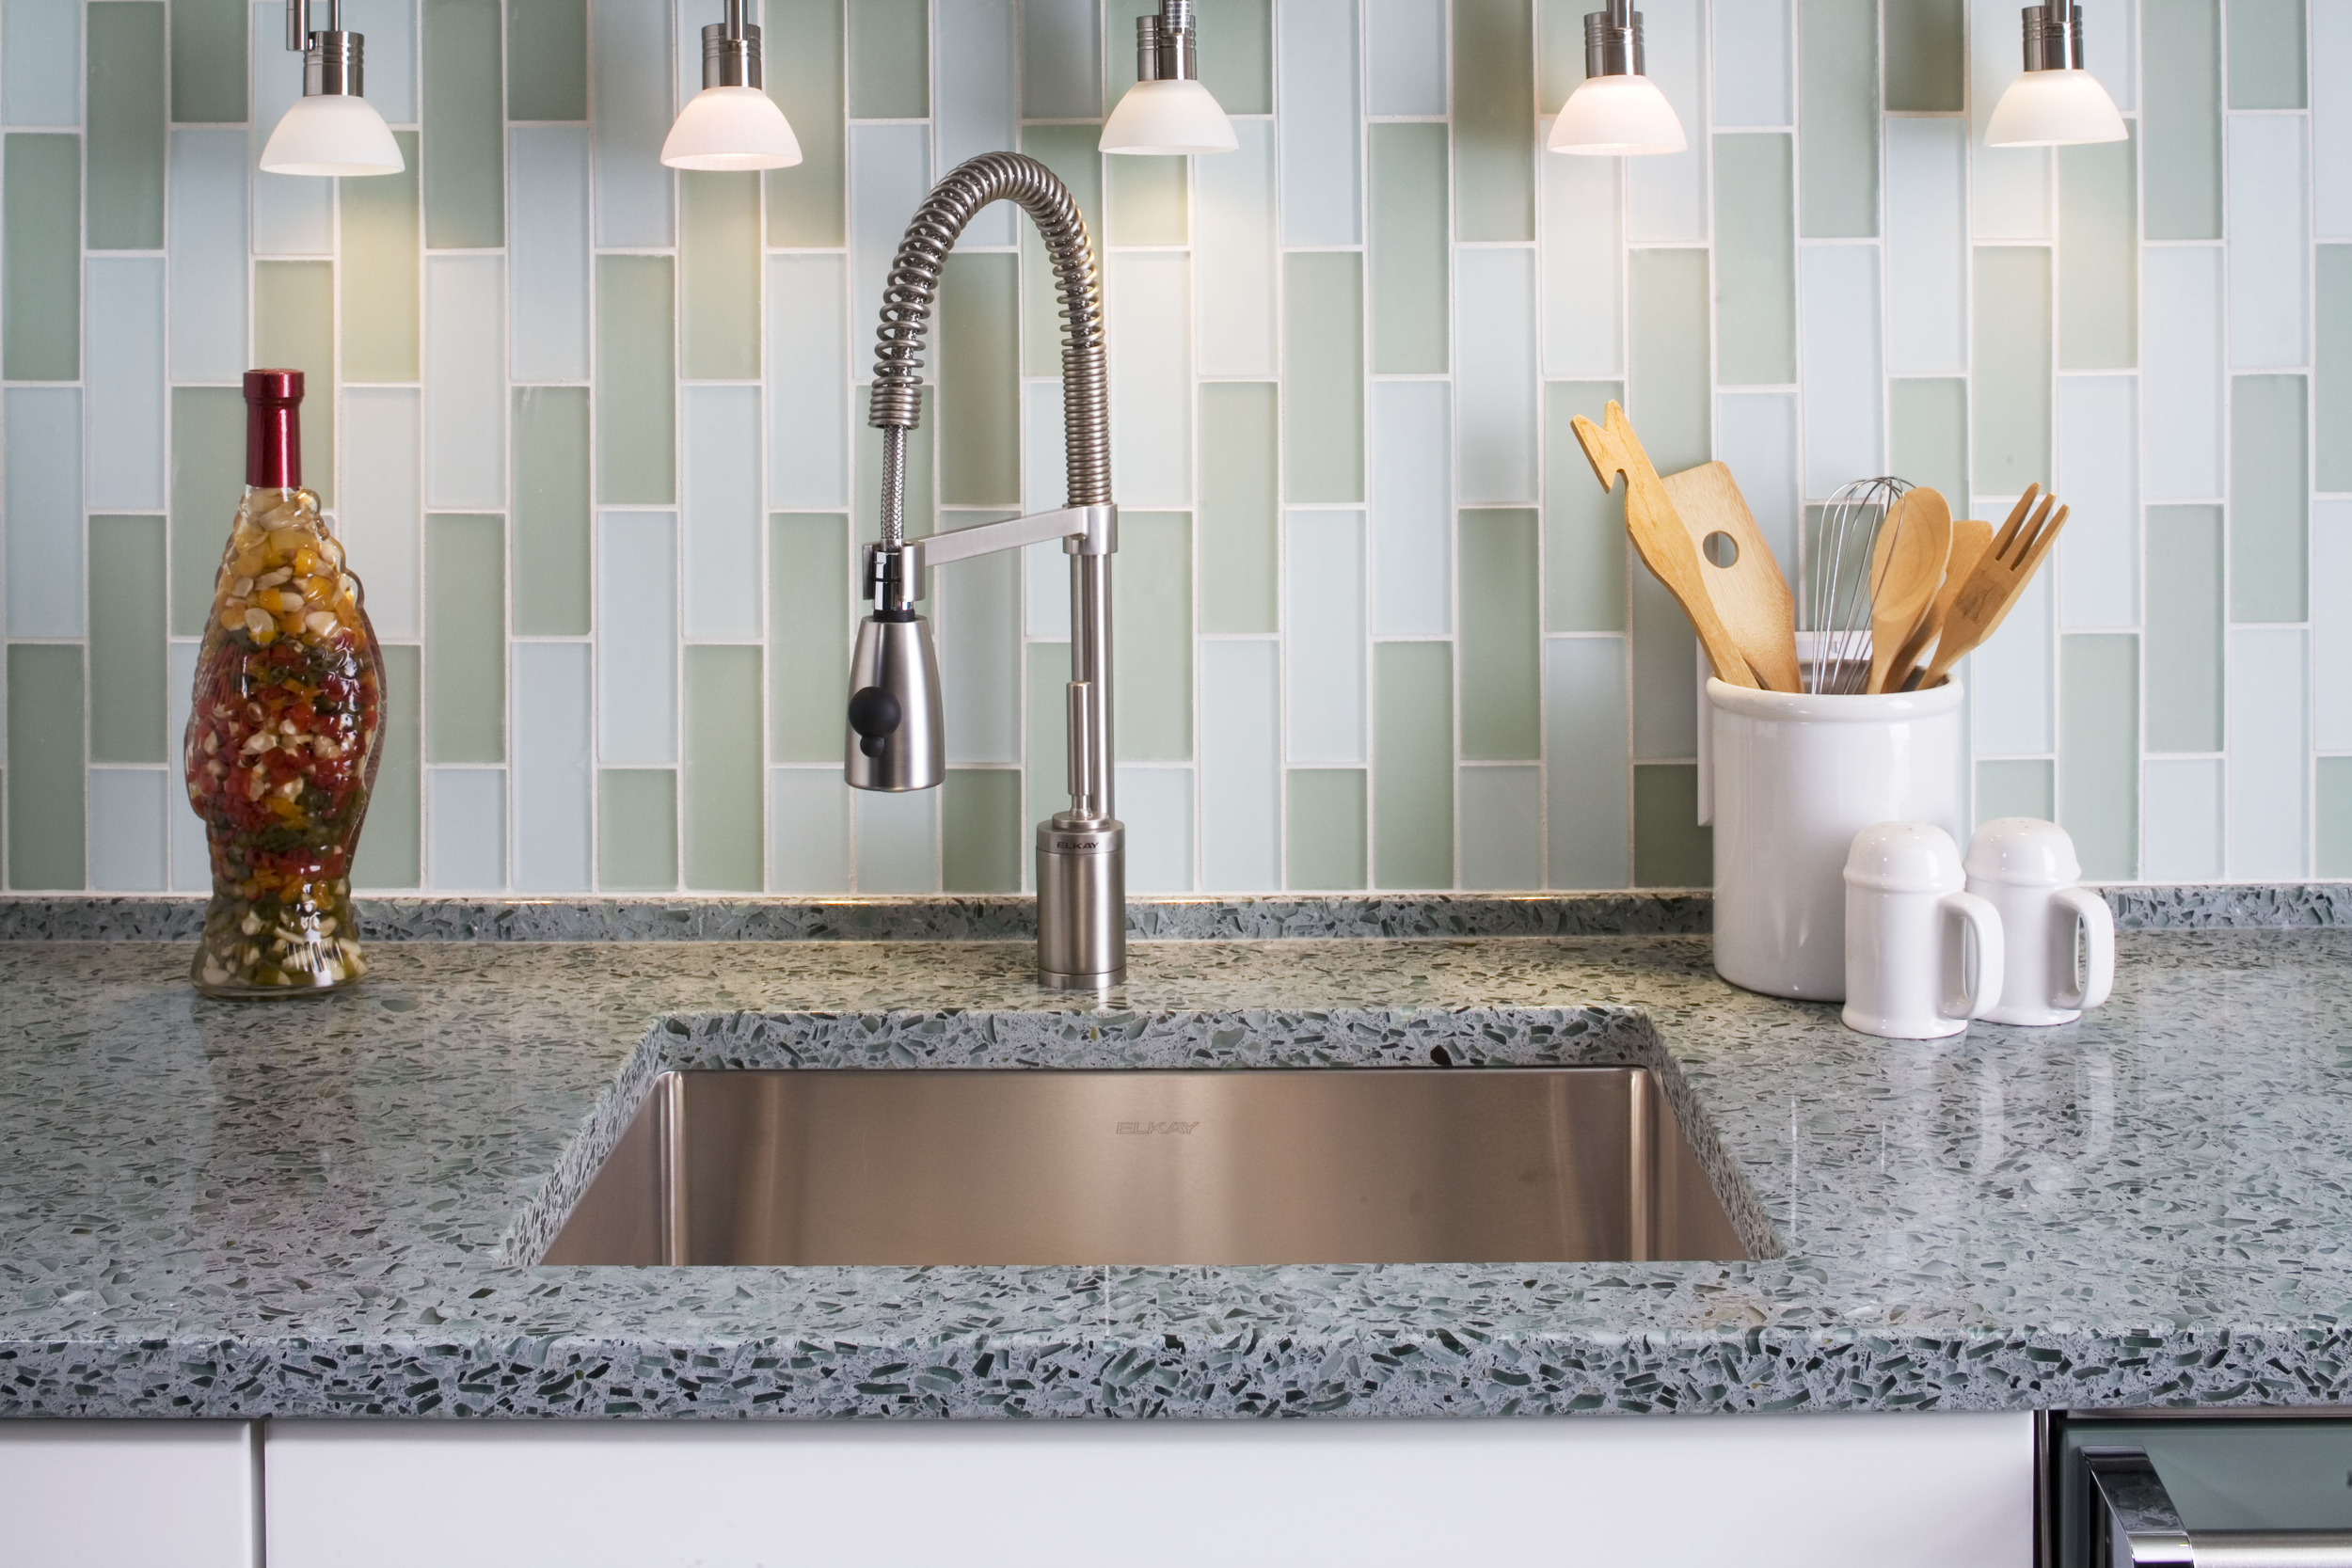 vetrazzo_hollywood_sage_kitchen_countertop_undermount_sink_faucet_glass_tile_backsplash_9x6_485ppi.jpg